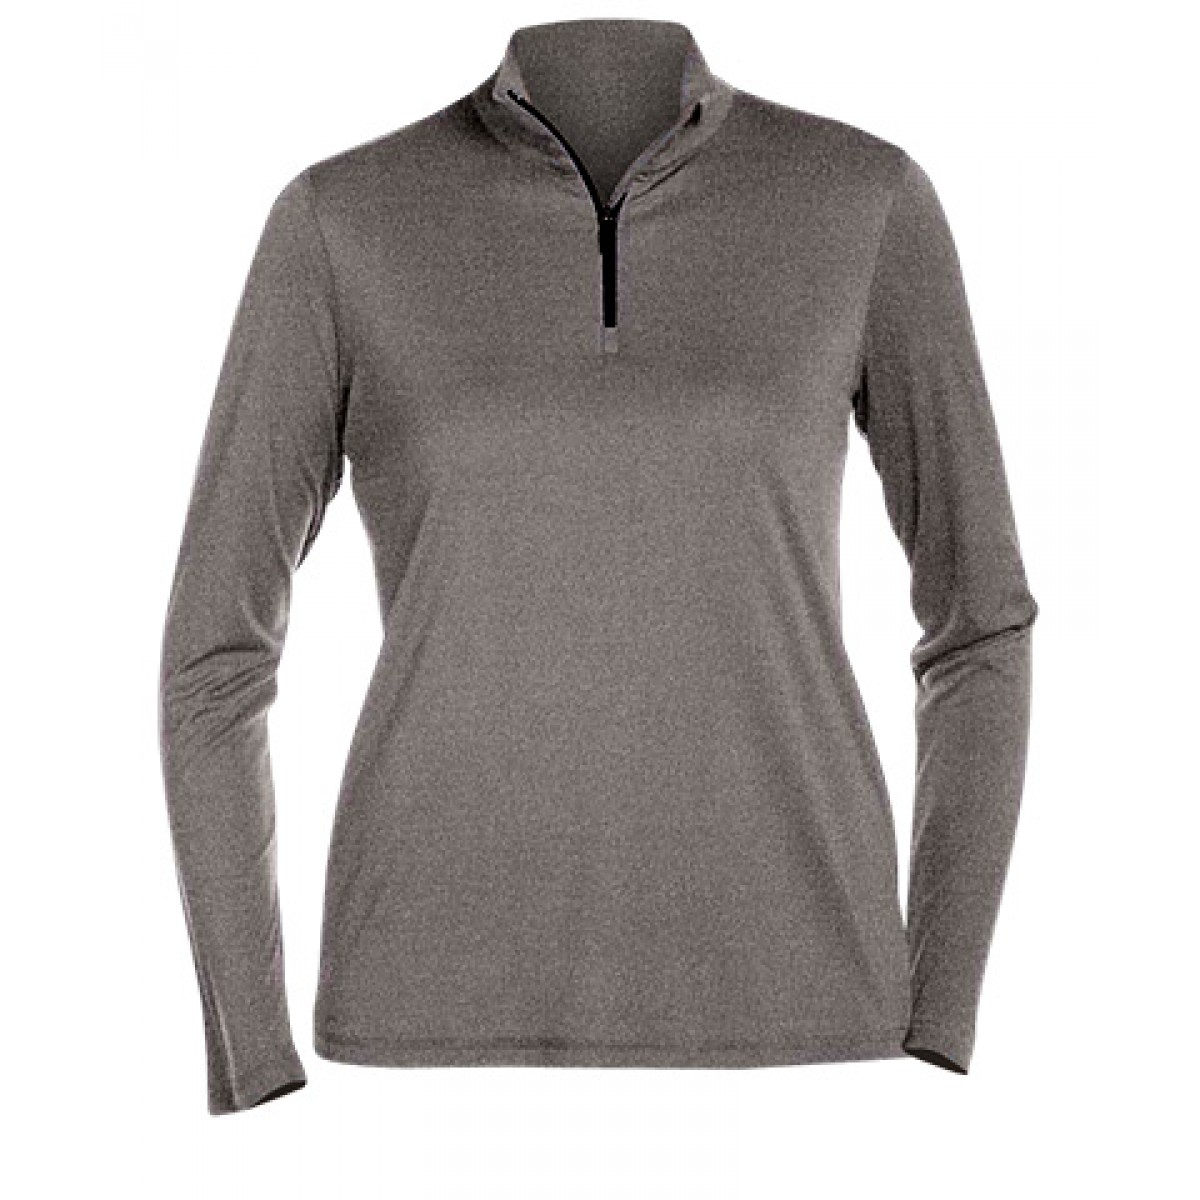 Ladies' Quarter-Zip Lightweight Pullover-Sports Grey-S